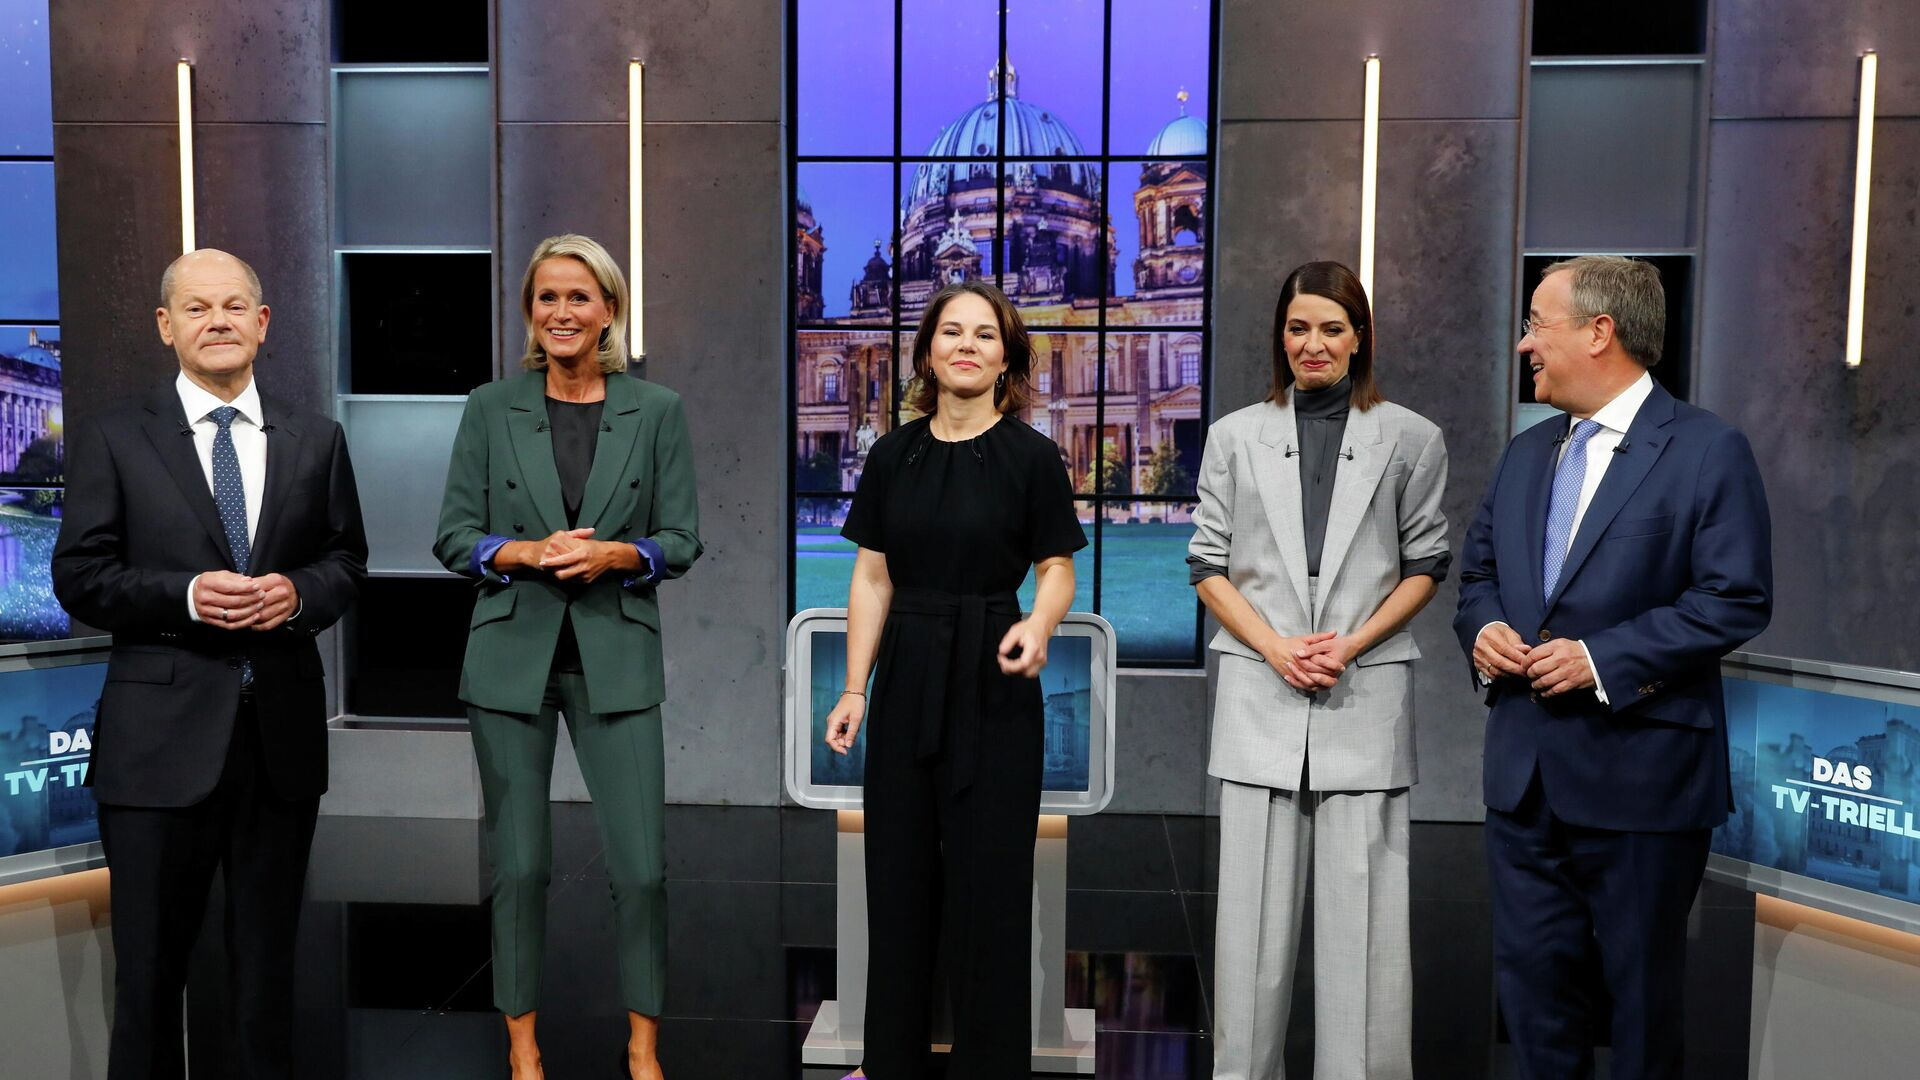 Candidates for the Federal elections Armin Laschet, CDU, Olaf Scholz, SPD and Annalena Baerbock, Greens pose with Linda Zervakis and Claudia von Brauchitsch for a photo, ahead of a TV talk show, in Berlin, Germany, September 19, 2021. REUTERS/Michele Tantussi - Sputnik International, 1920, 24.09.2021